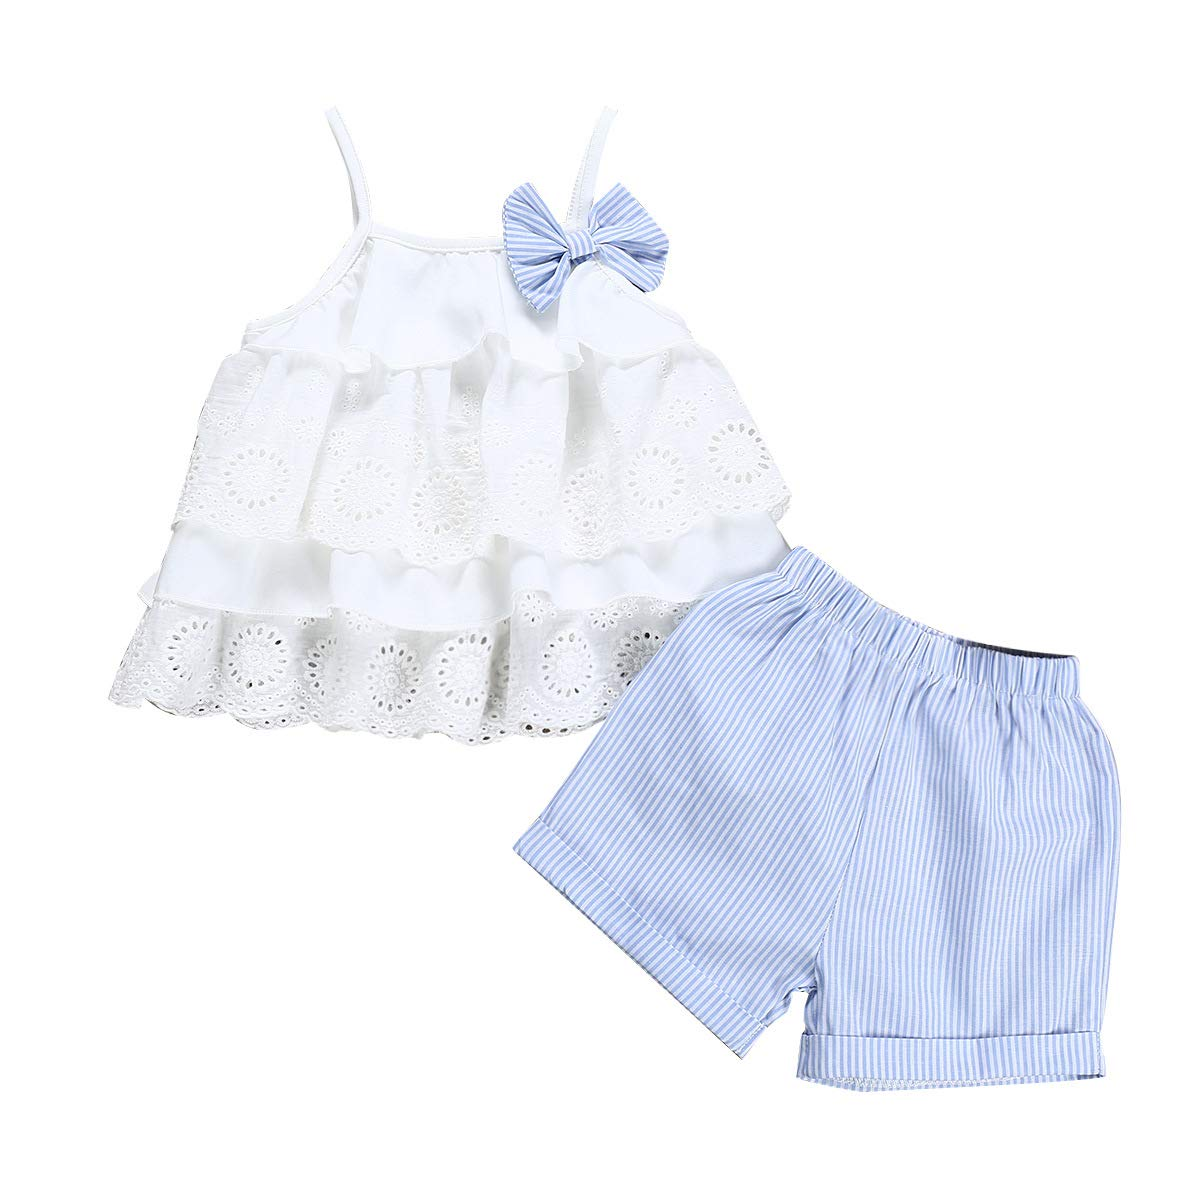 HZYBABY Toddler Baby Girls 2Pcs Outfits Clothes Sleeveless T-Shirt Vest Tops+Shorts Pants